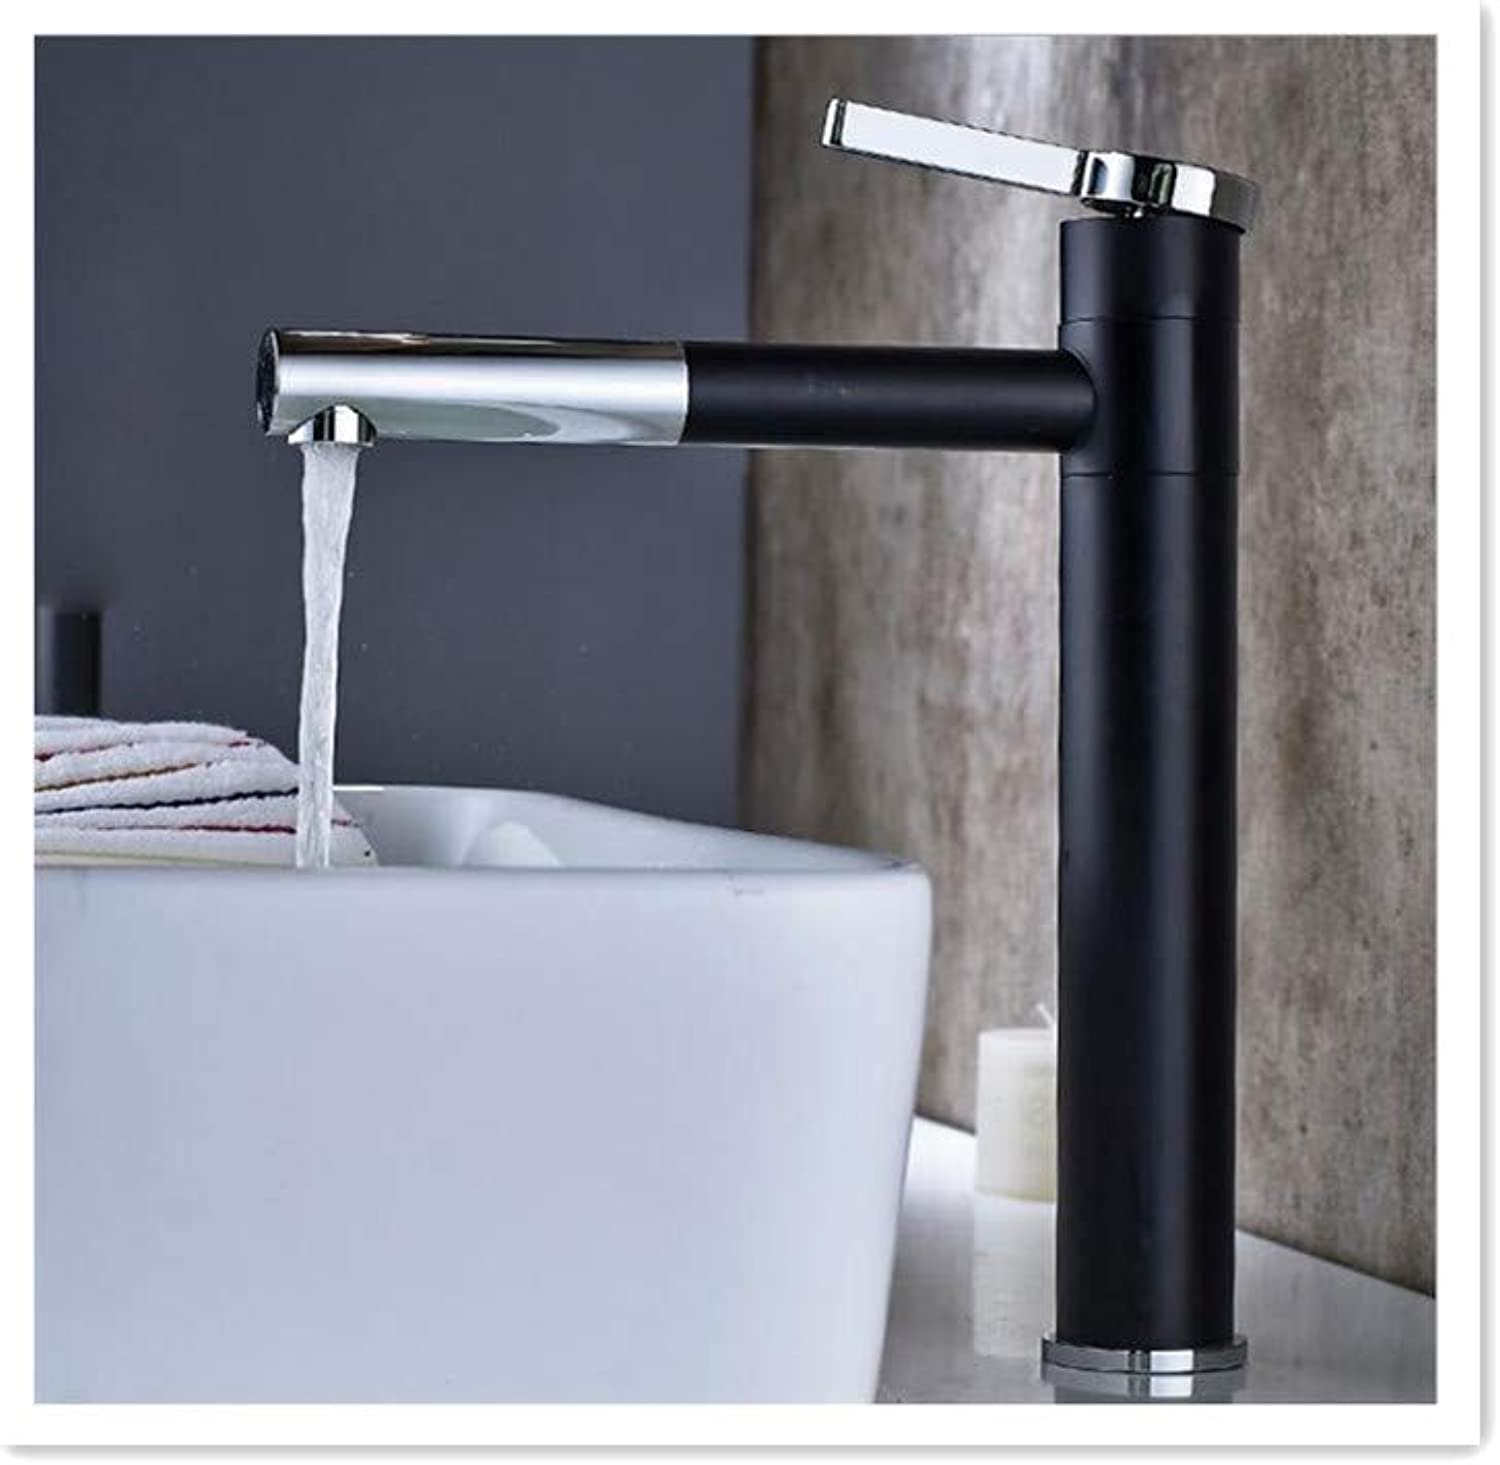 BBQBQ Copper bathroom paint two-color black and white basin faucet redatable hot and cold water mixer faucet black A